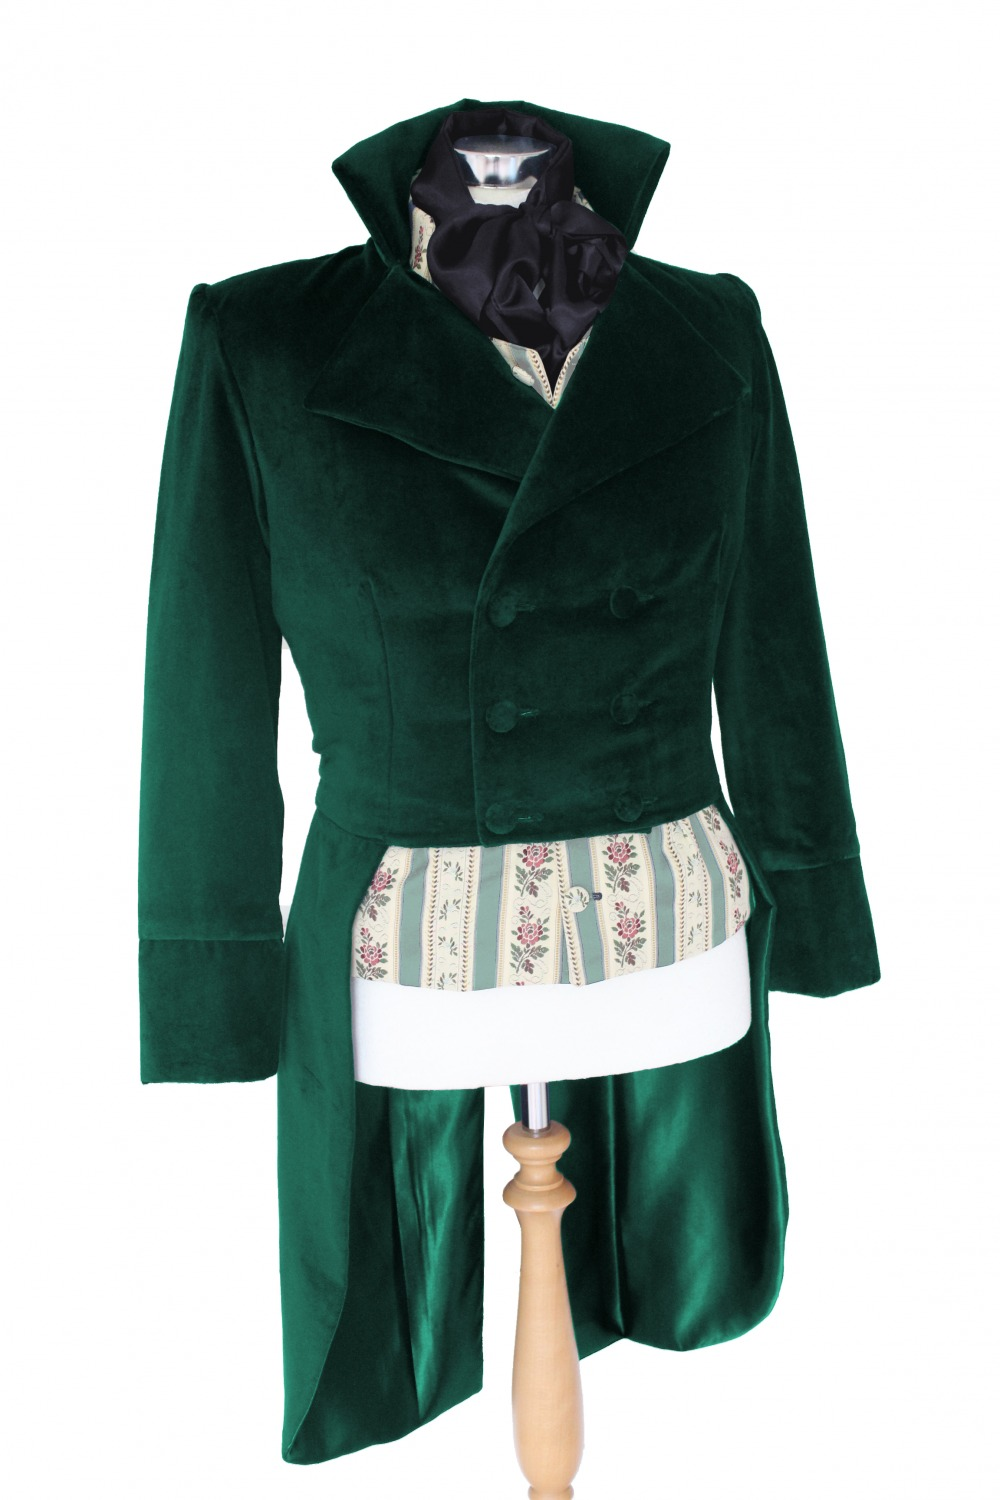 For Sale Made To Order Men's Handmade Velvet Deluxe Mr.Darcy Regency Victorian Tailcoat Made To Order XS, S, M, L, XL  Image